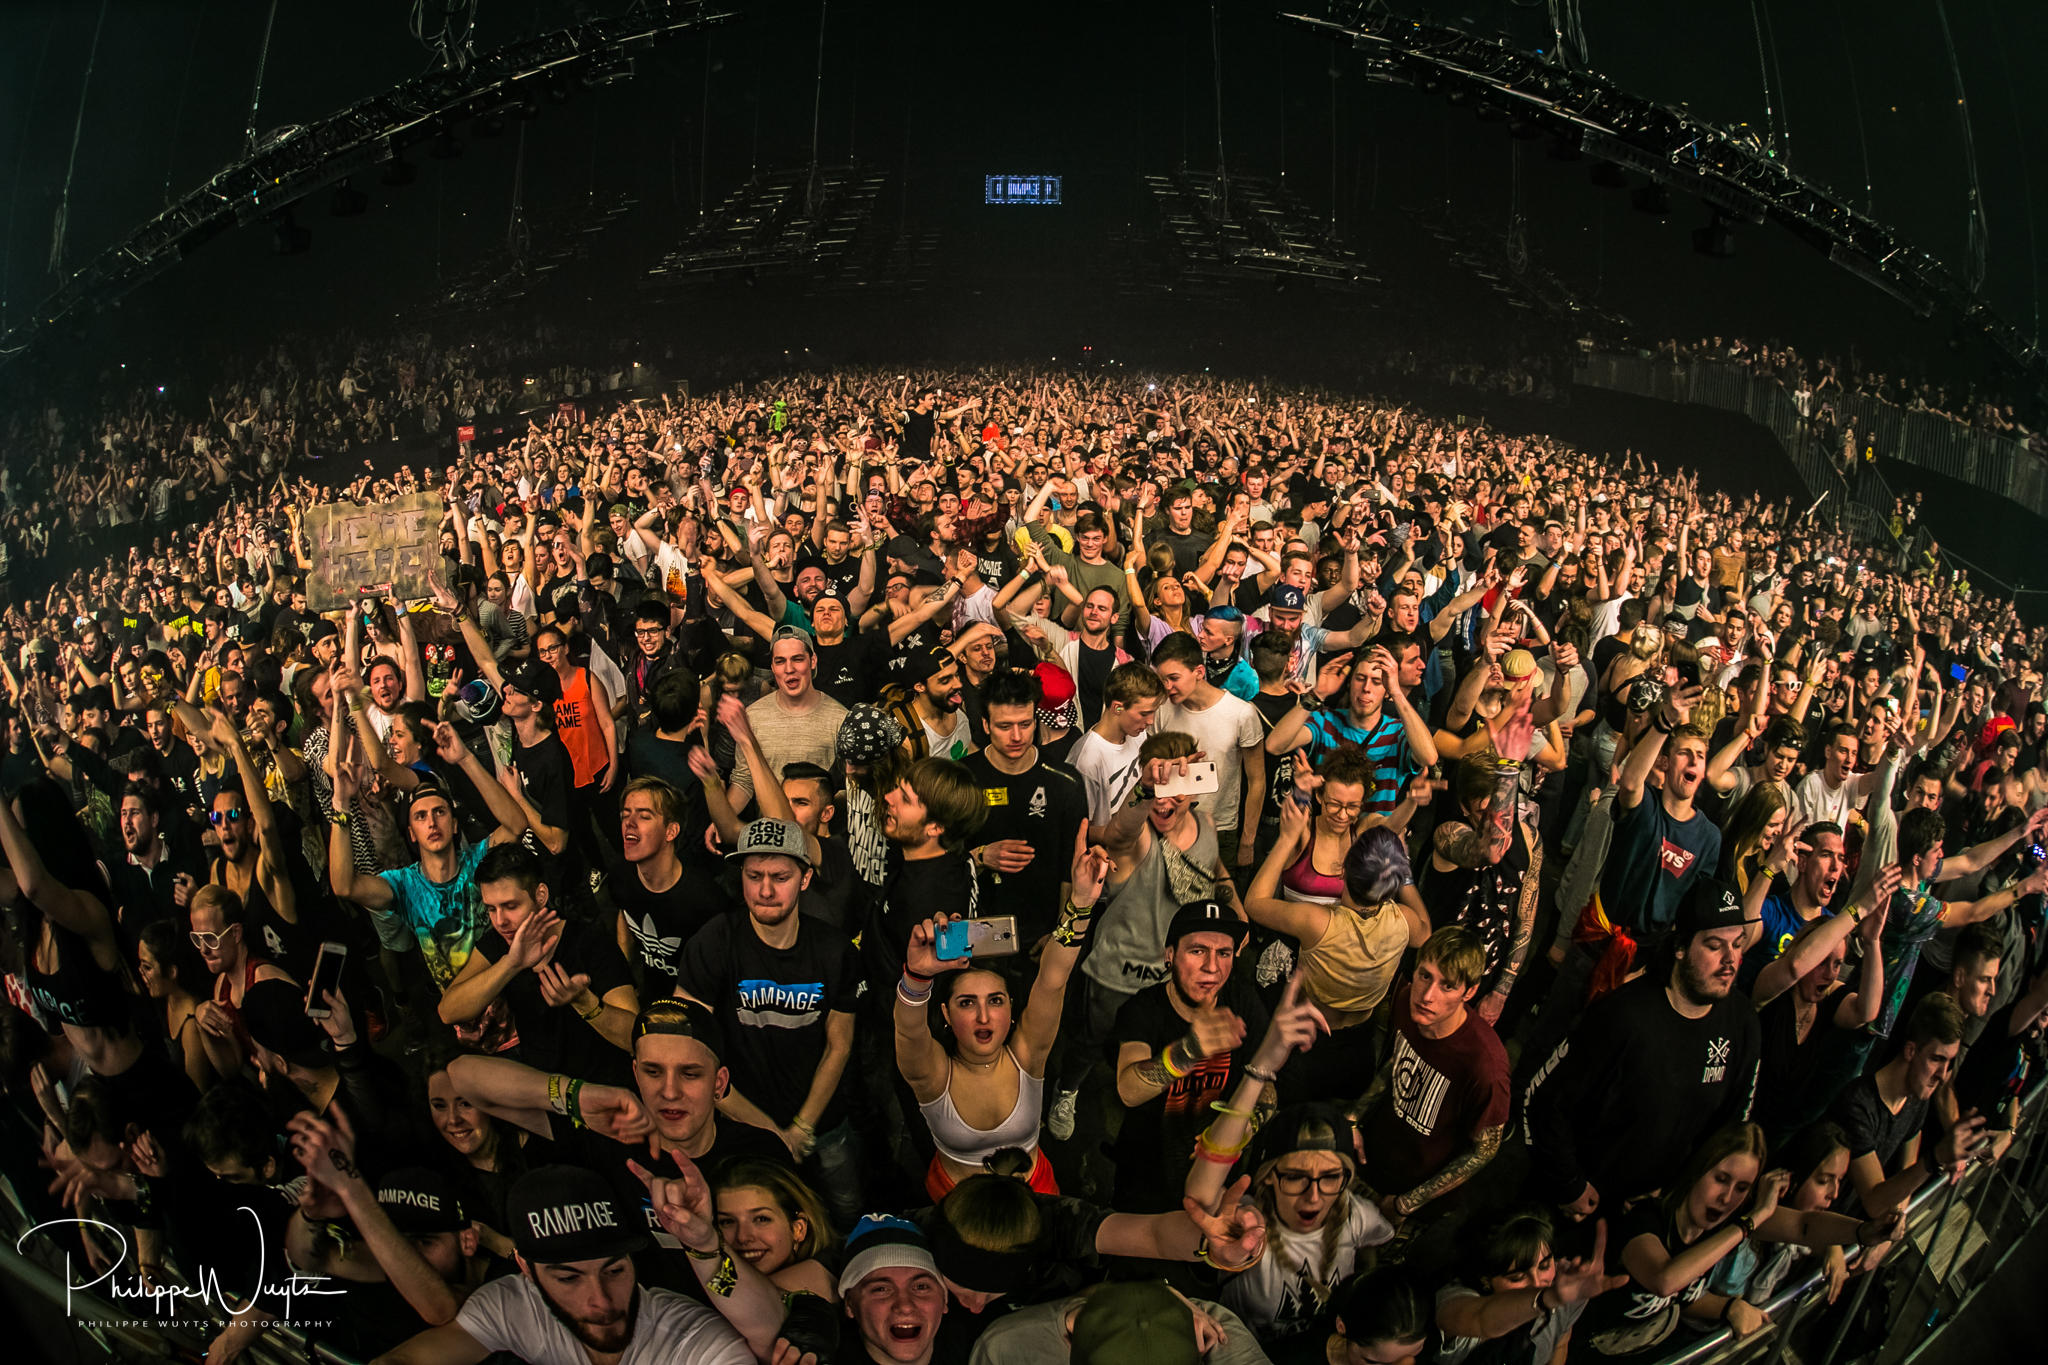 2018-03-02 - Rampage 2018 - Day I by Philippe Wuyts - 073.jpg